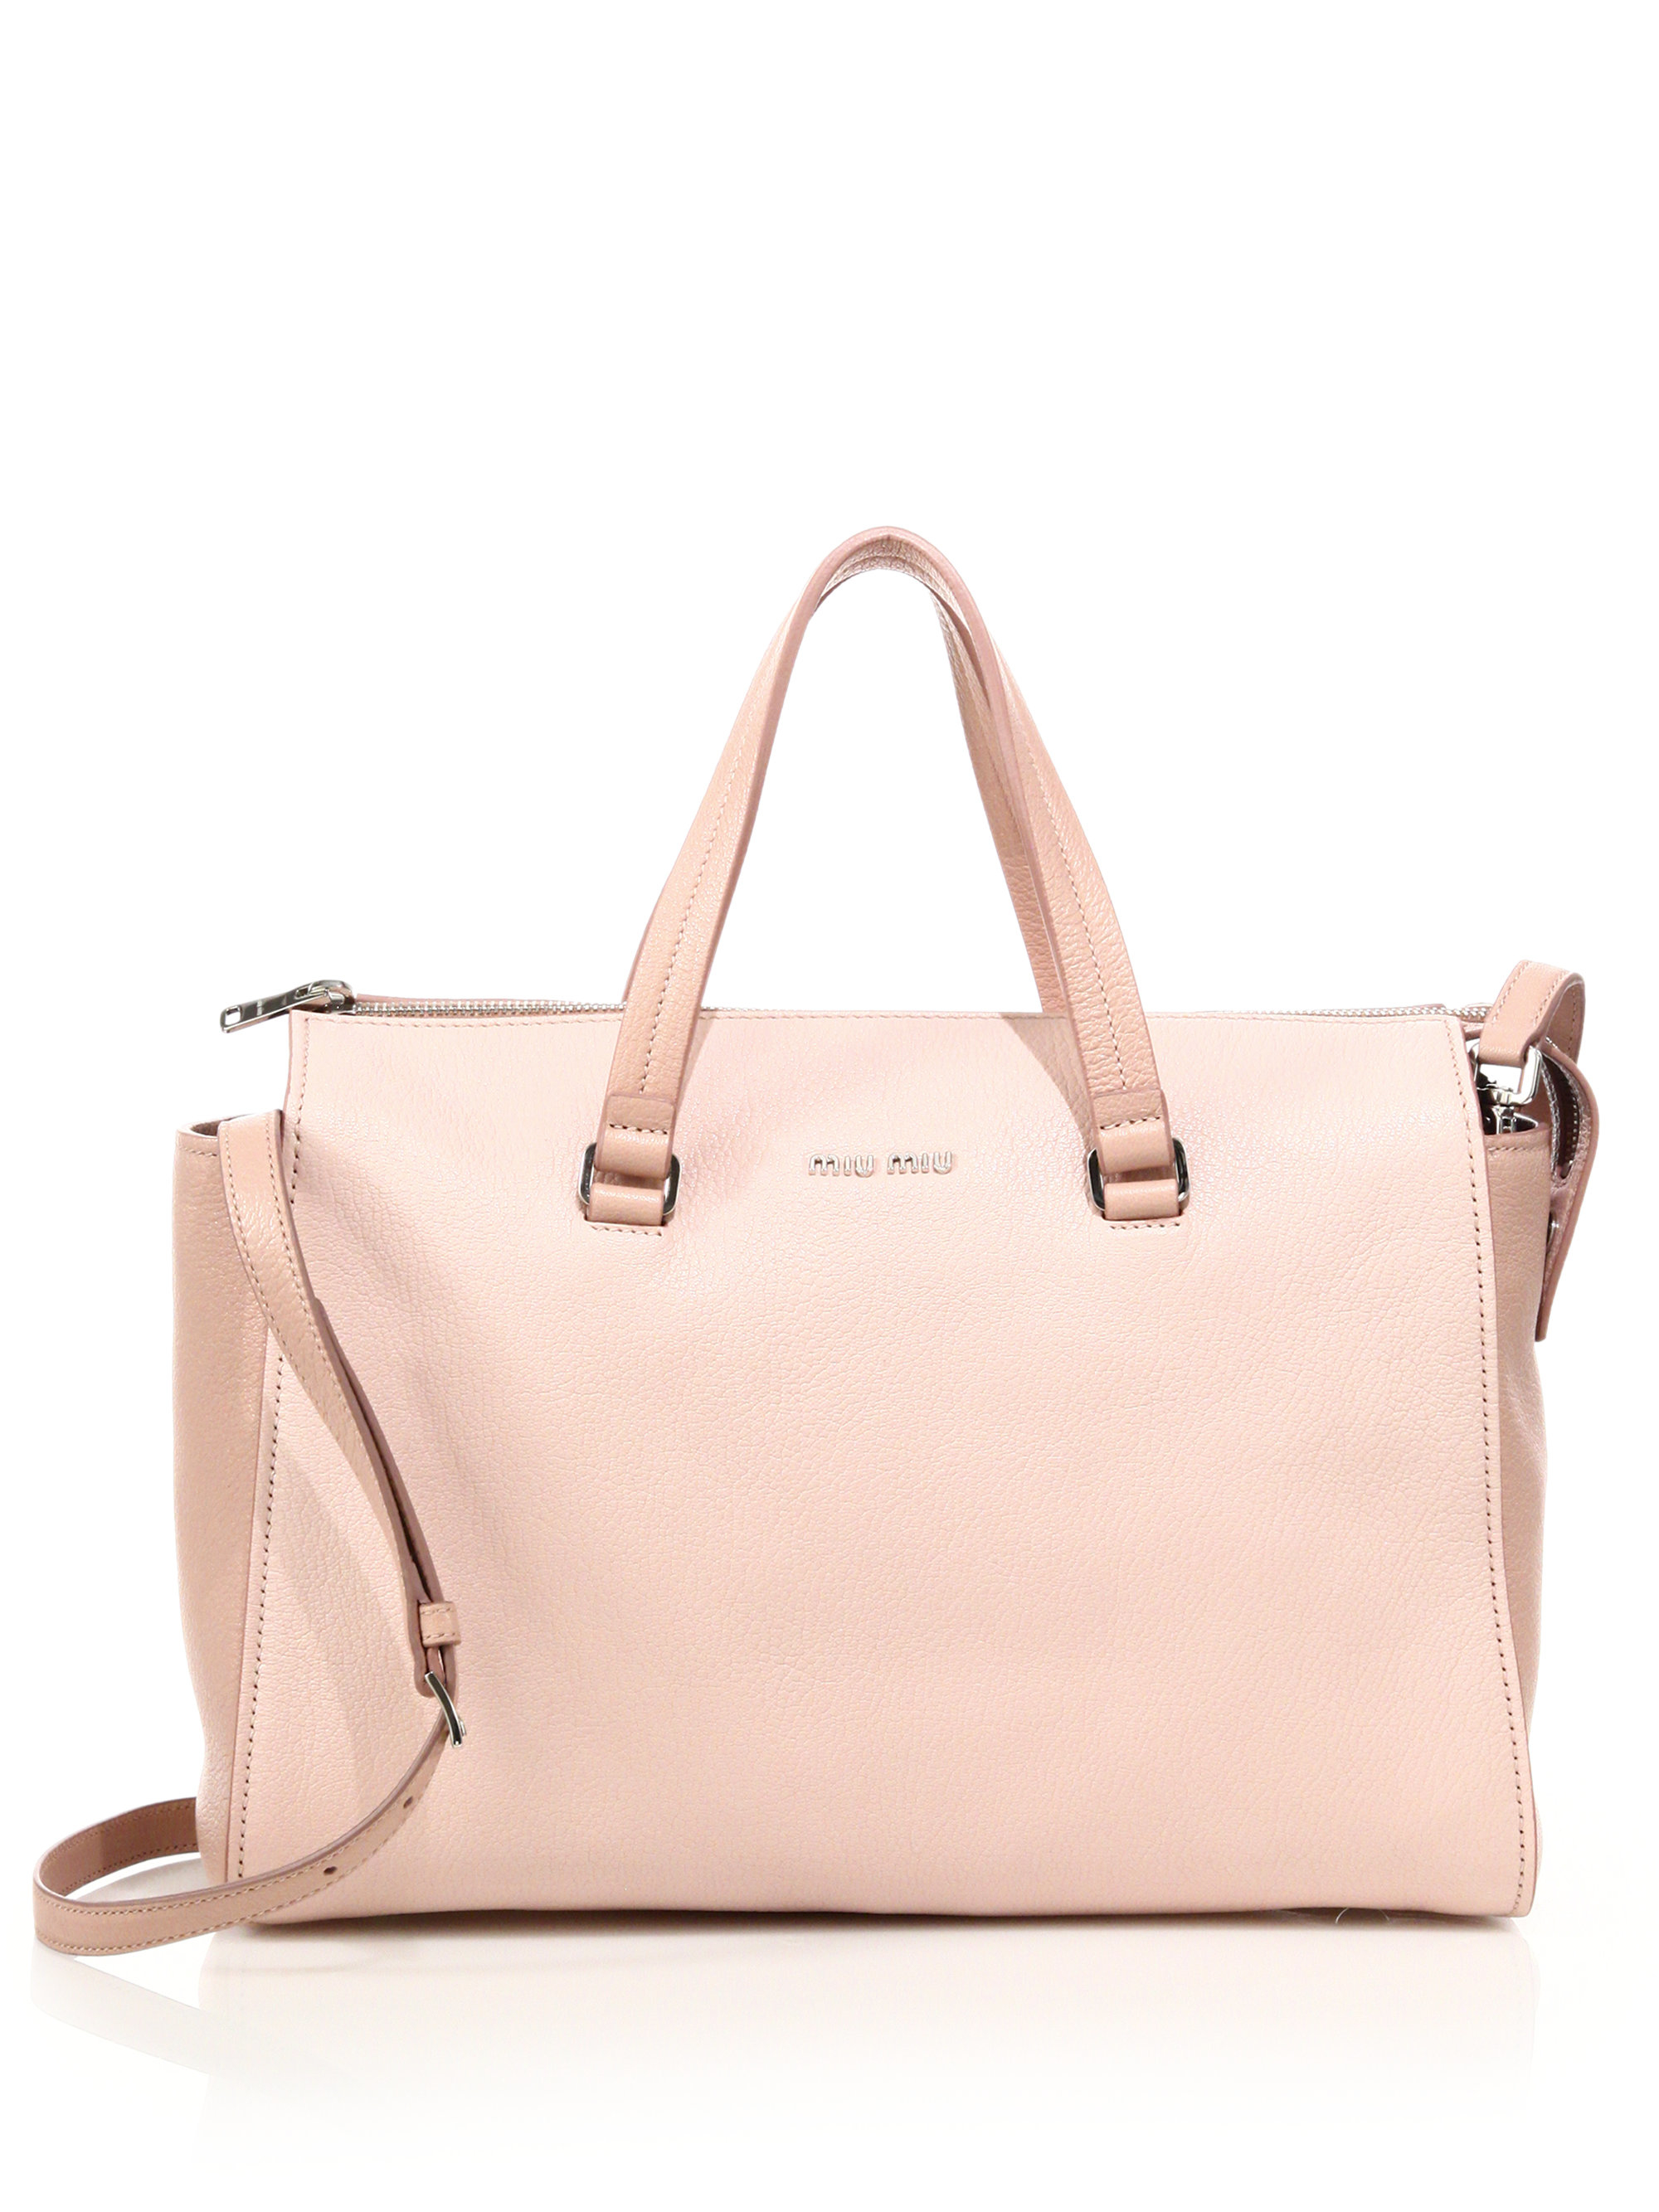 837bb7bf2a0a Top Lyst - Miu Miu Madras Two-tone Leather Zip Satchel in Pink IE03